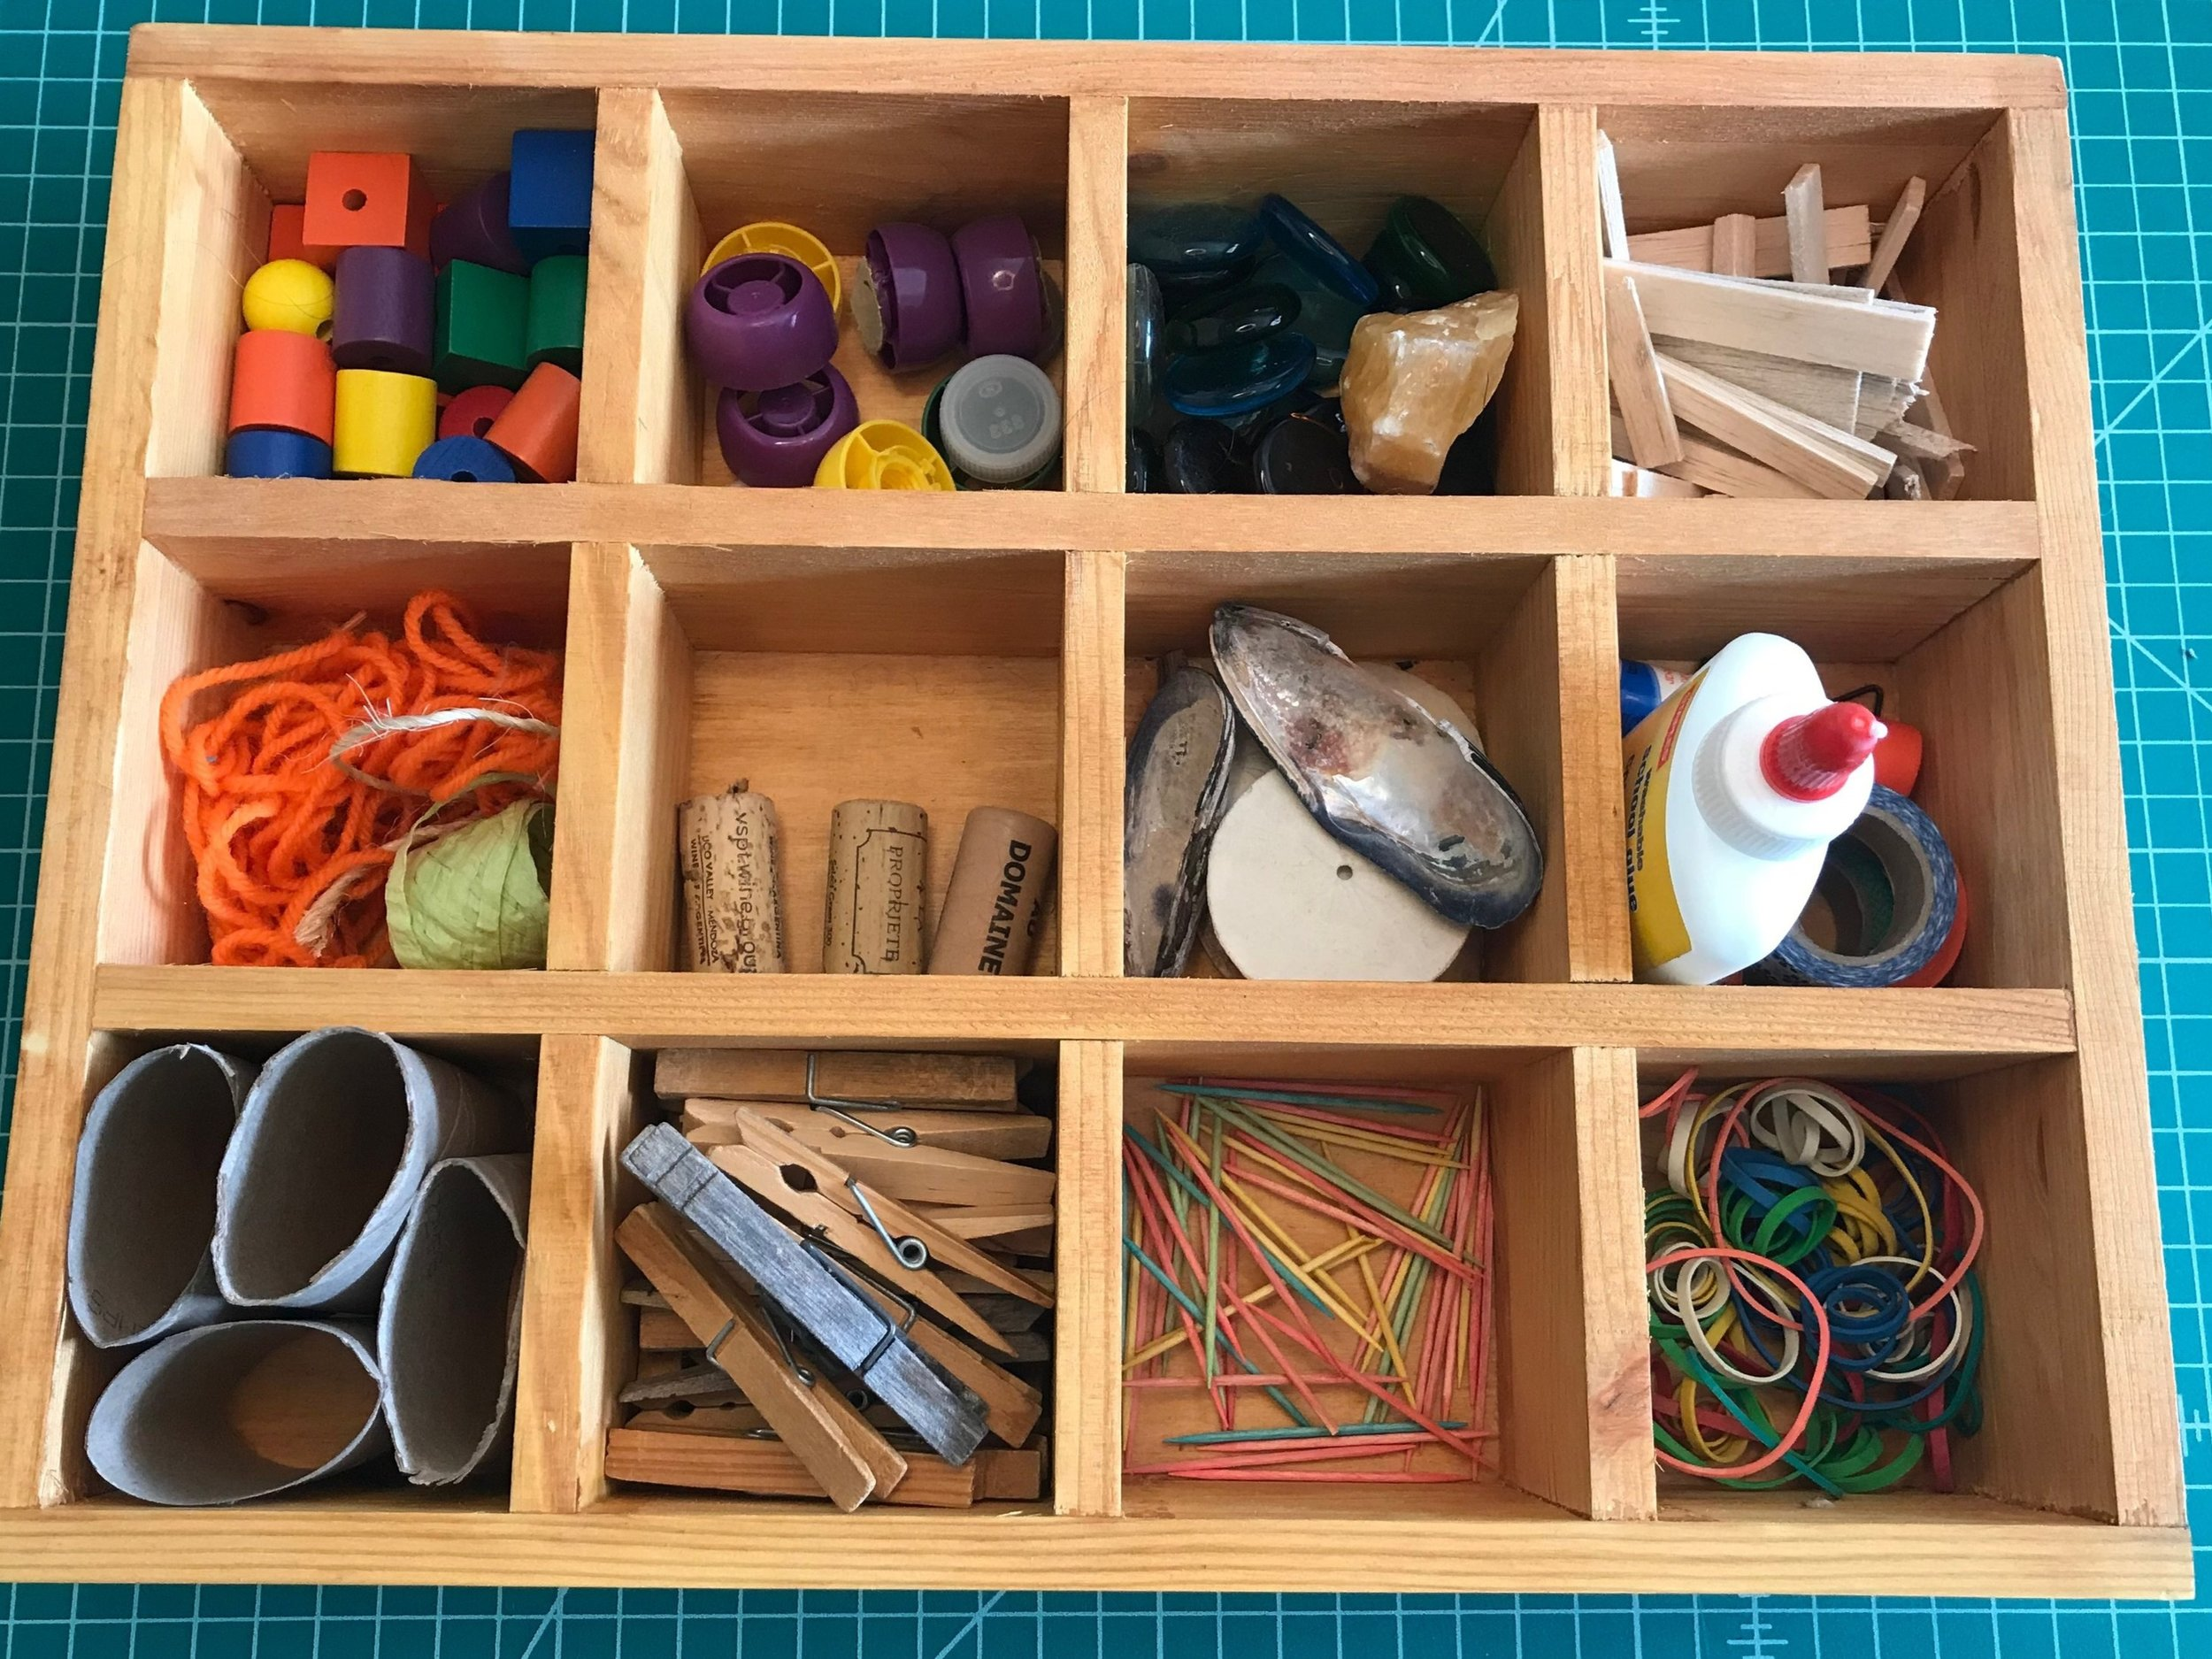 TINKER TRAY  Materials: assorted loose parts such as corks, shells, string, toilet rolls, toothpicks, and shells; fasteners like glue, tape or string. Store them in a sectional tray or  shadow box with compartments (pictured).   Process: Let children explore the materials. Discuss ideas for what you may want to create. For children 4 and up, try drawing a picture of your ideas first, or after they are done. Always supervise when children are using glue gun and/or scissors. Use with other materials such as cardboard, wood pieces, play-dough and more!  Words: build, fasten, texture, strong, balance, color words, shape words  Questions: What do you think will happen if? What did you make? What does it do? What is it called?